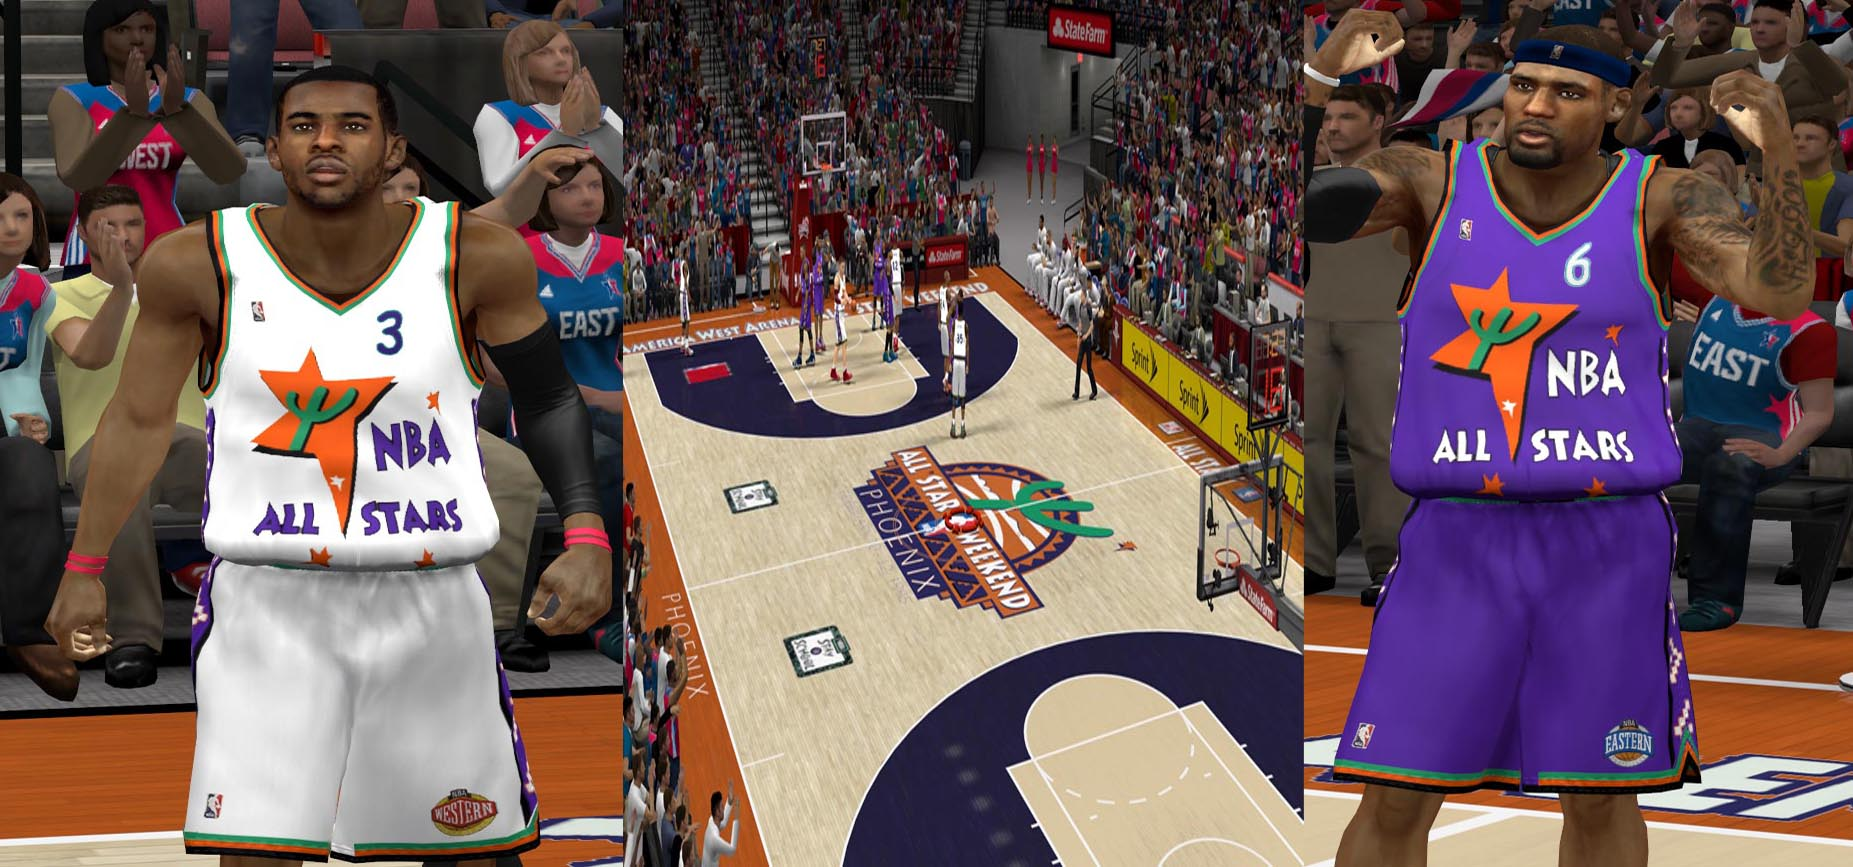 95 + 96 All Star Tribute Package 2K12